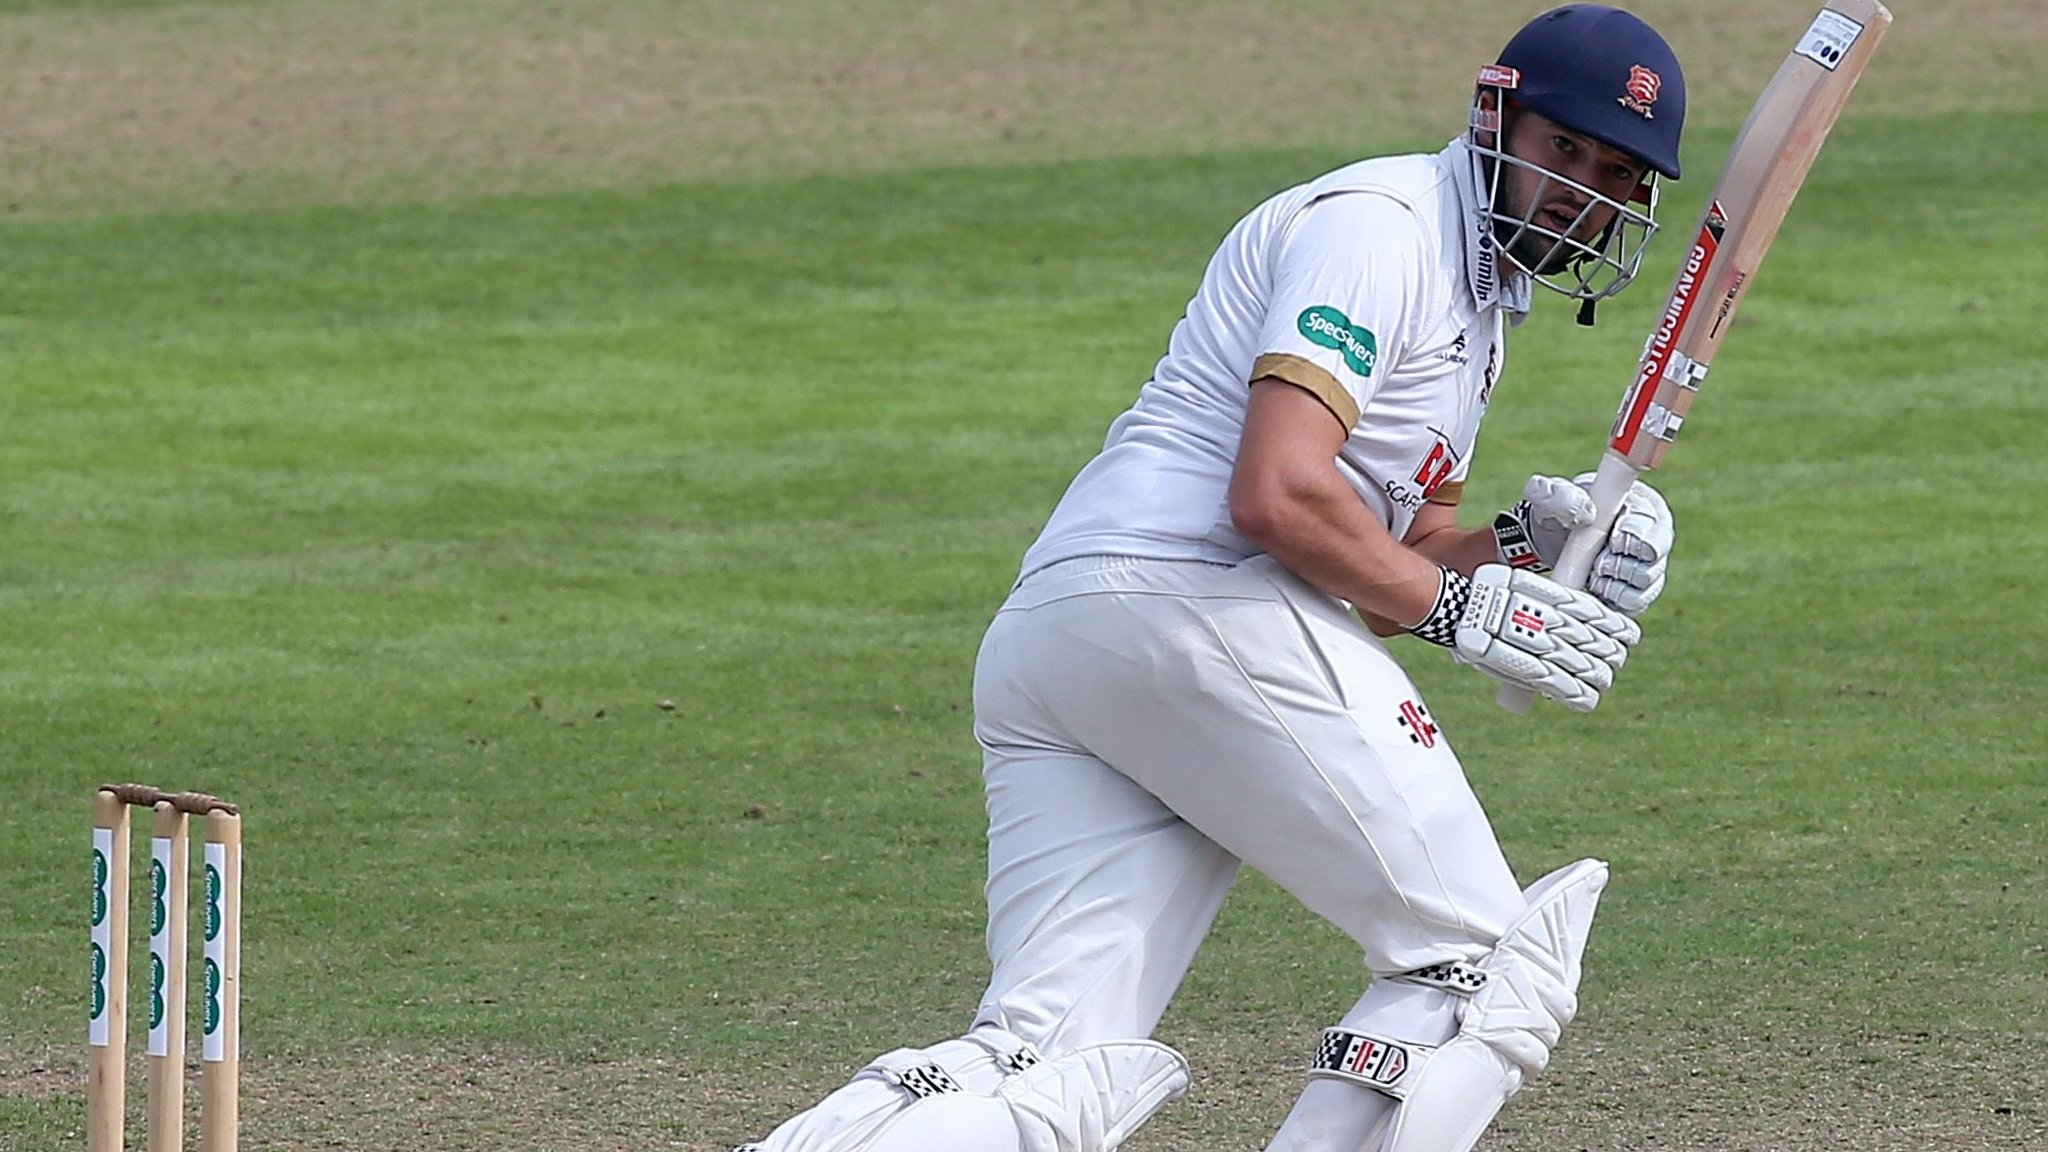 County Championship: Nick Browne leads Essex chase against Somerset at Taunton